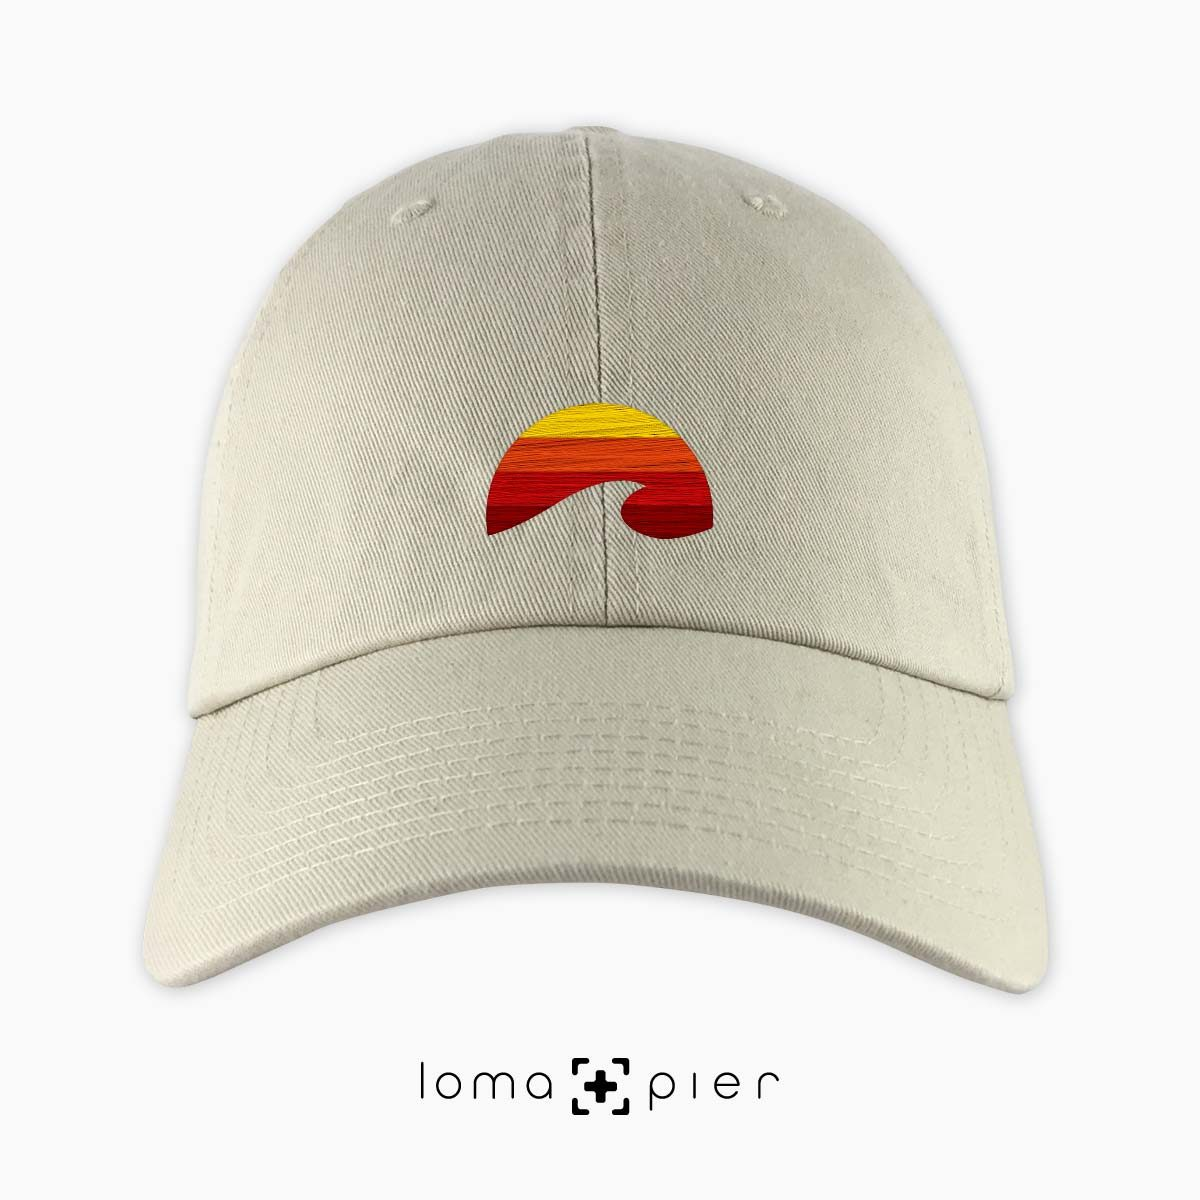 PACIFIC SUN icon embroidered on a khaki dad hat by loma+pier hat store made in the USA